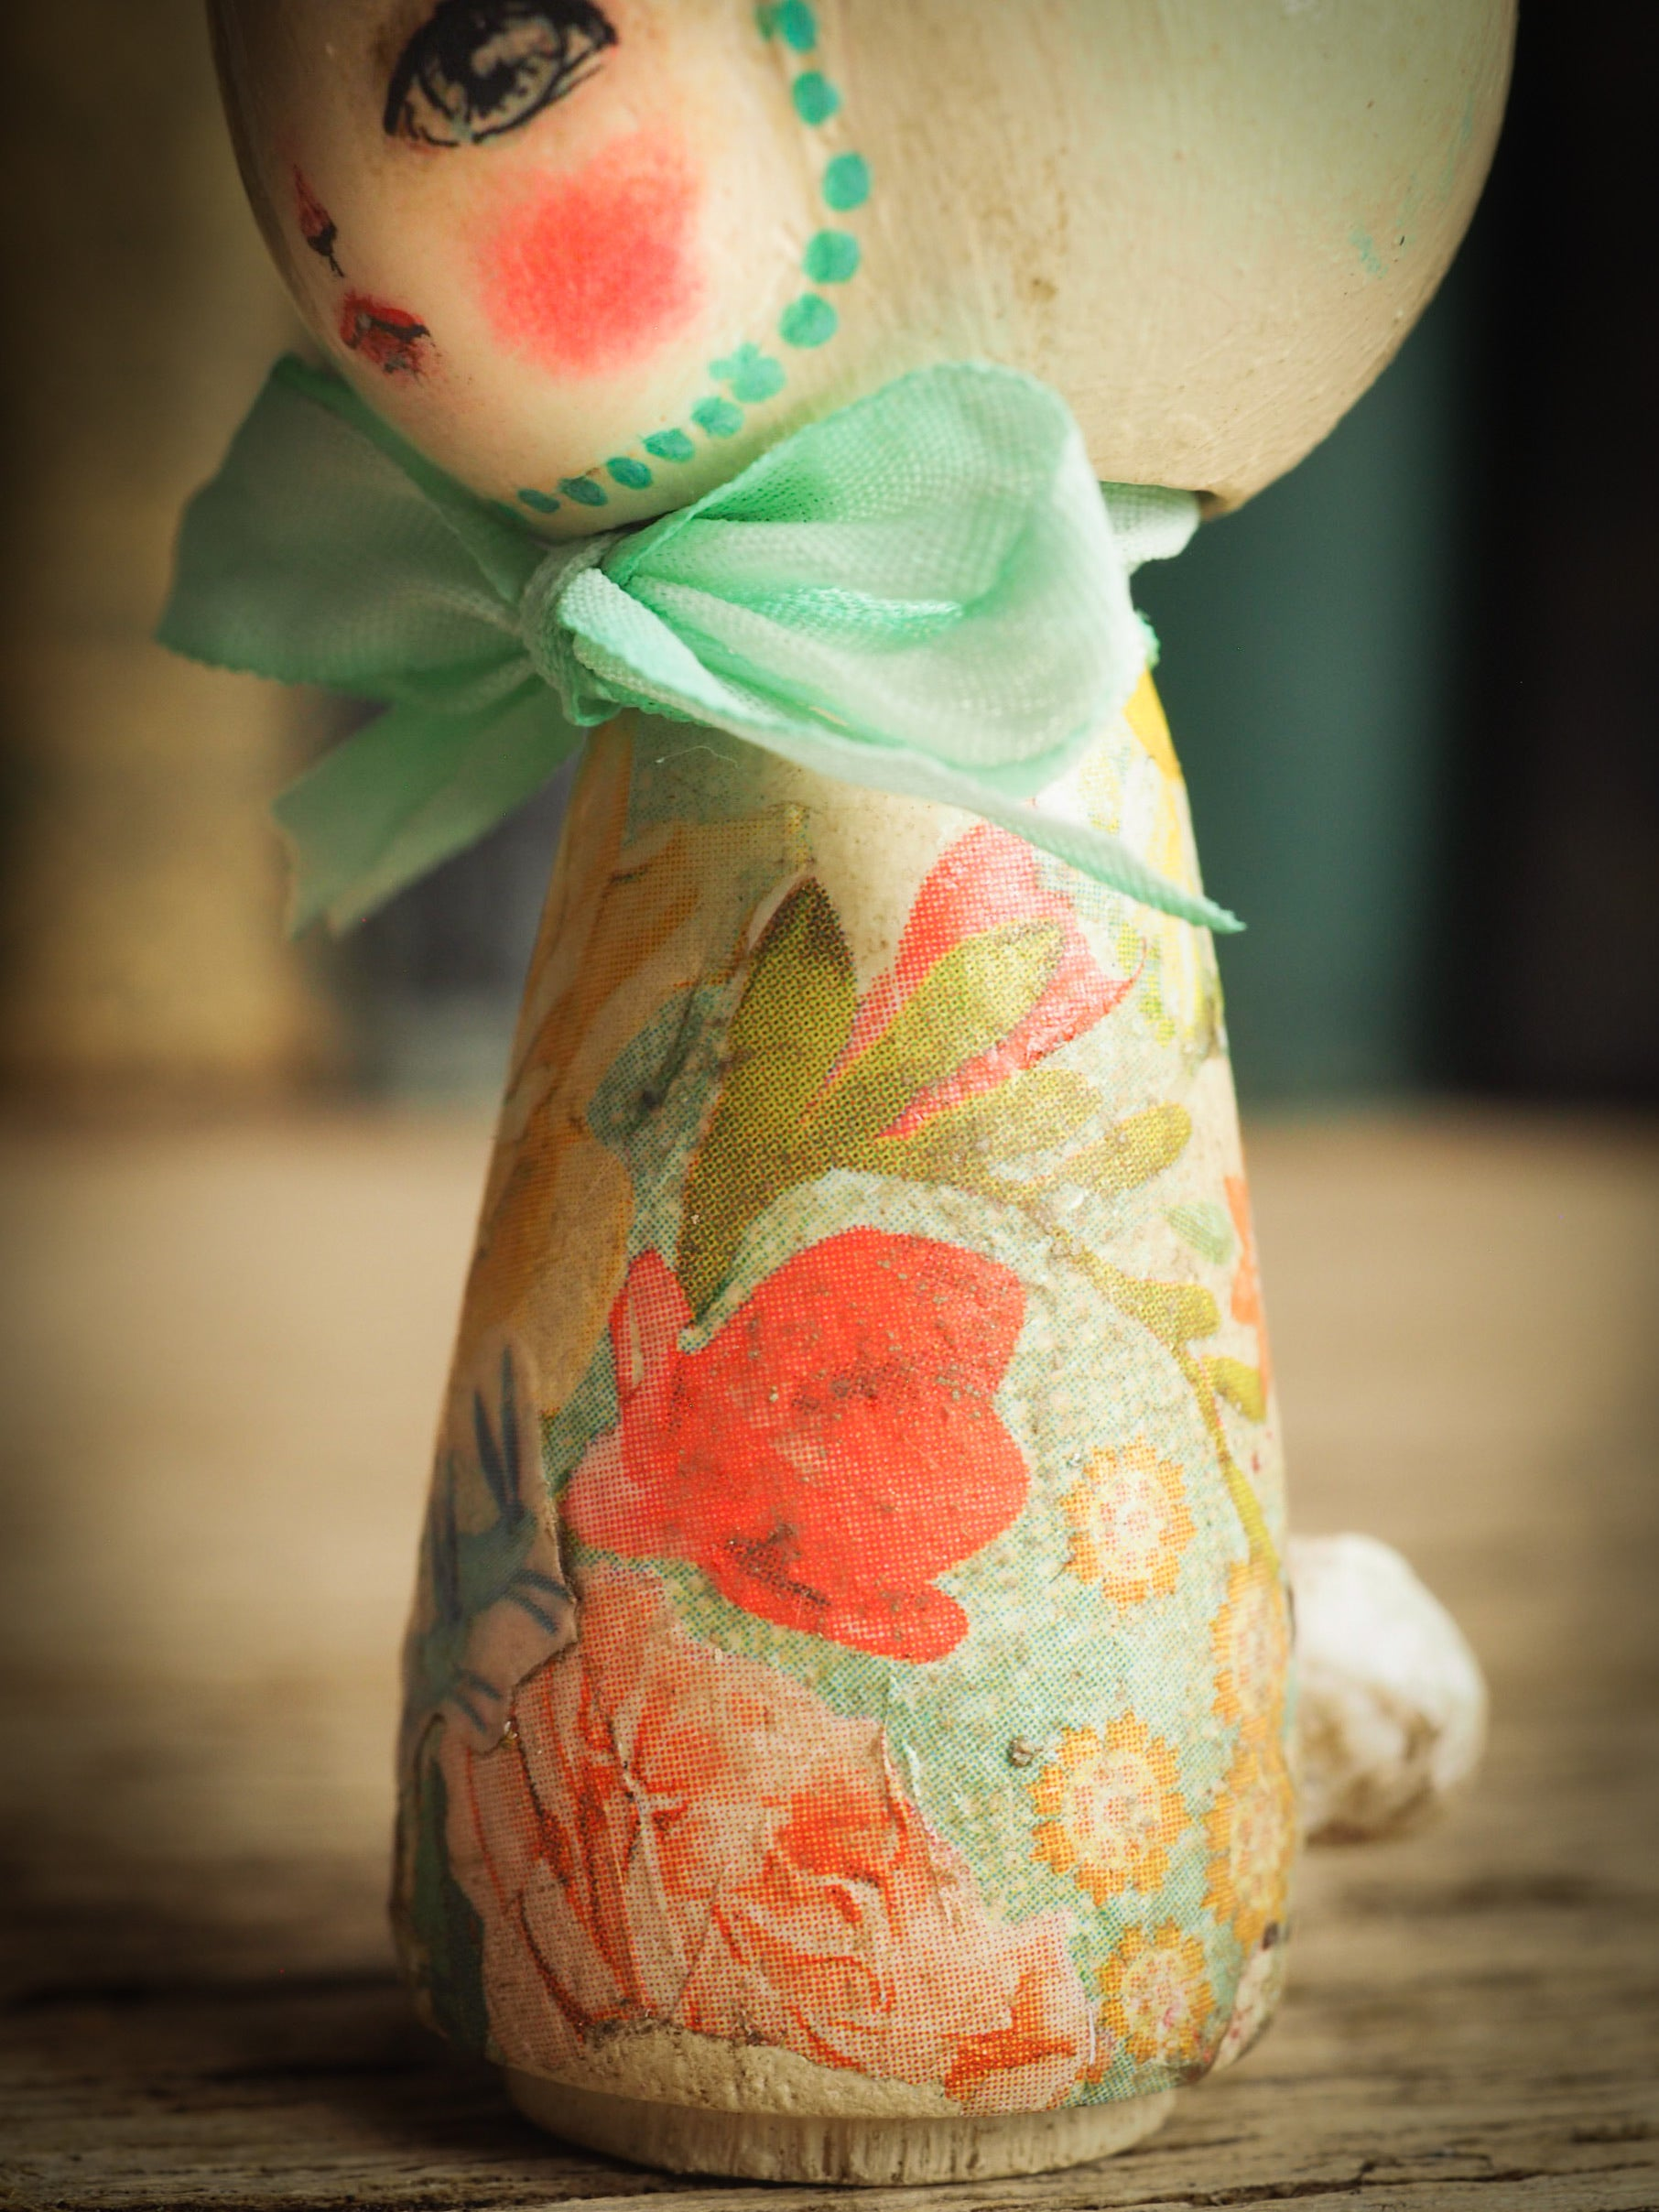 Adorable Easter Bunny Rabbit handmade kokesi wooden mini art doll by Danita Art craft project made with modeling clay silk ribbon and decoupage applications